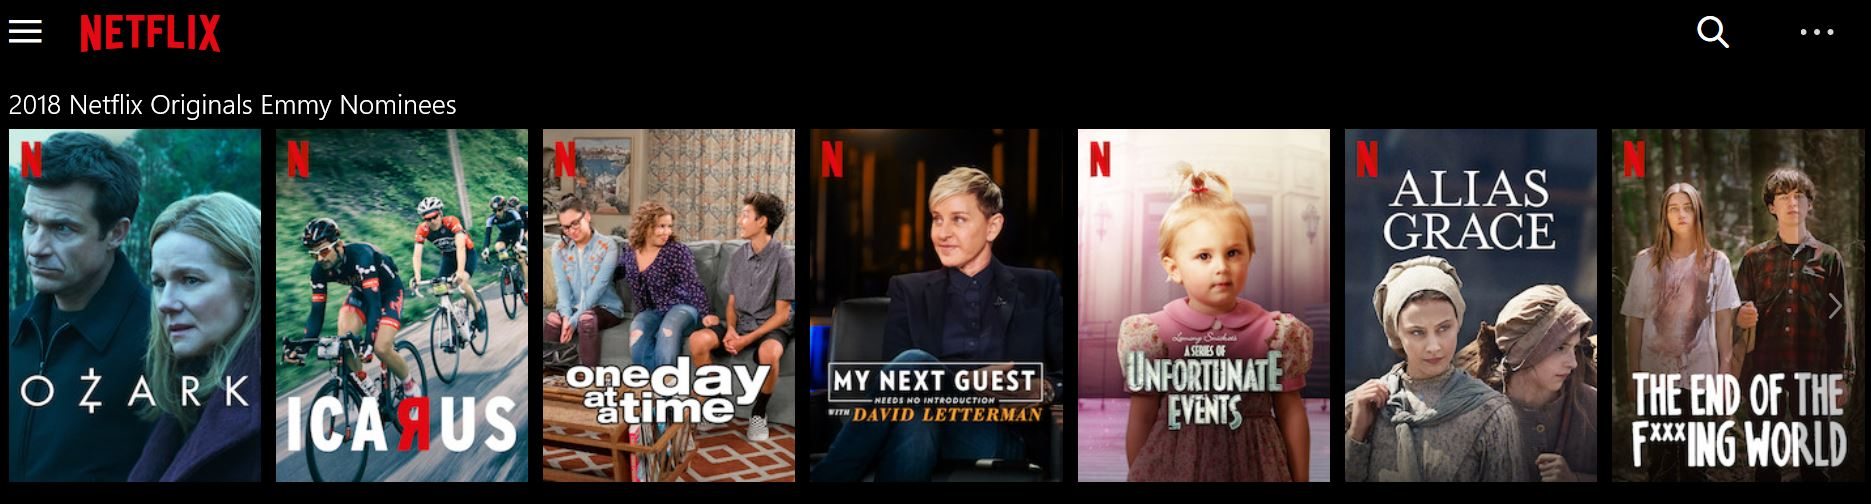 netflix original content - Why OTT Bundles Are Key For Streaming To Beat Cable TV - Touchstream